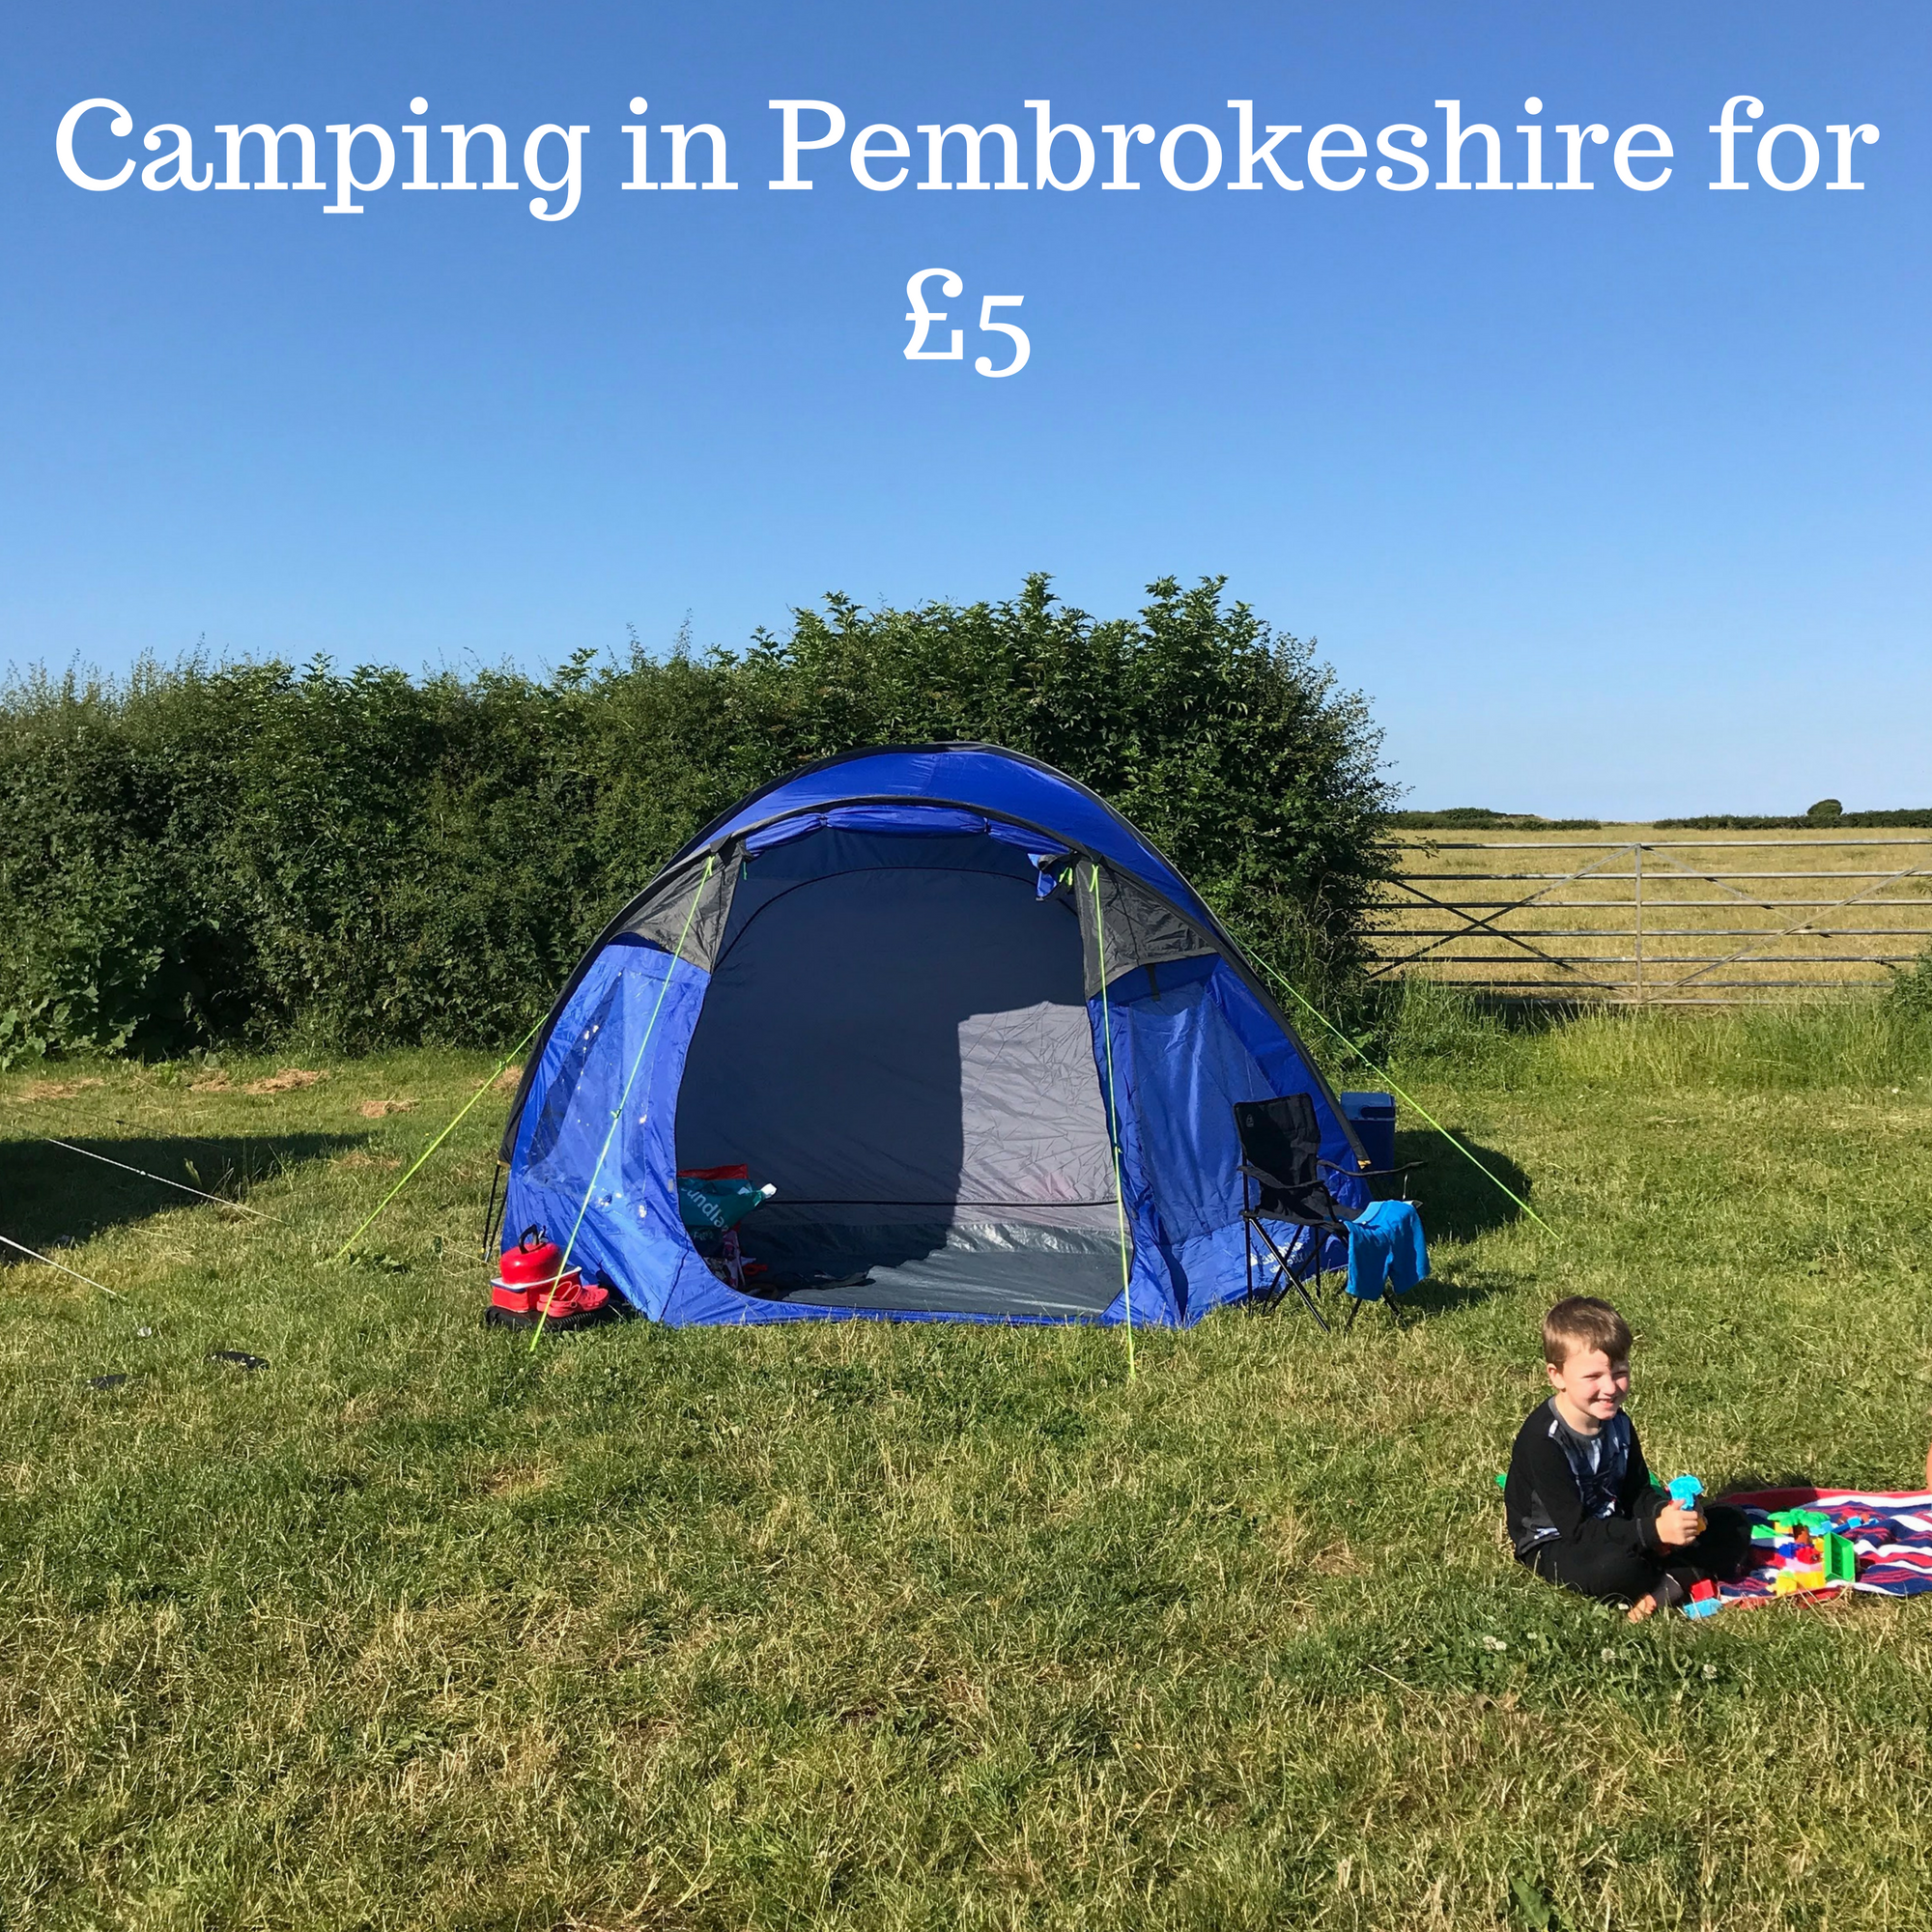 Camping in Pembrokeshire for £5